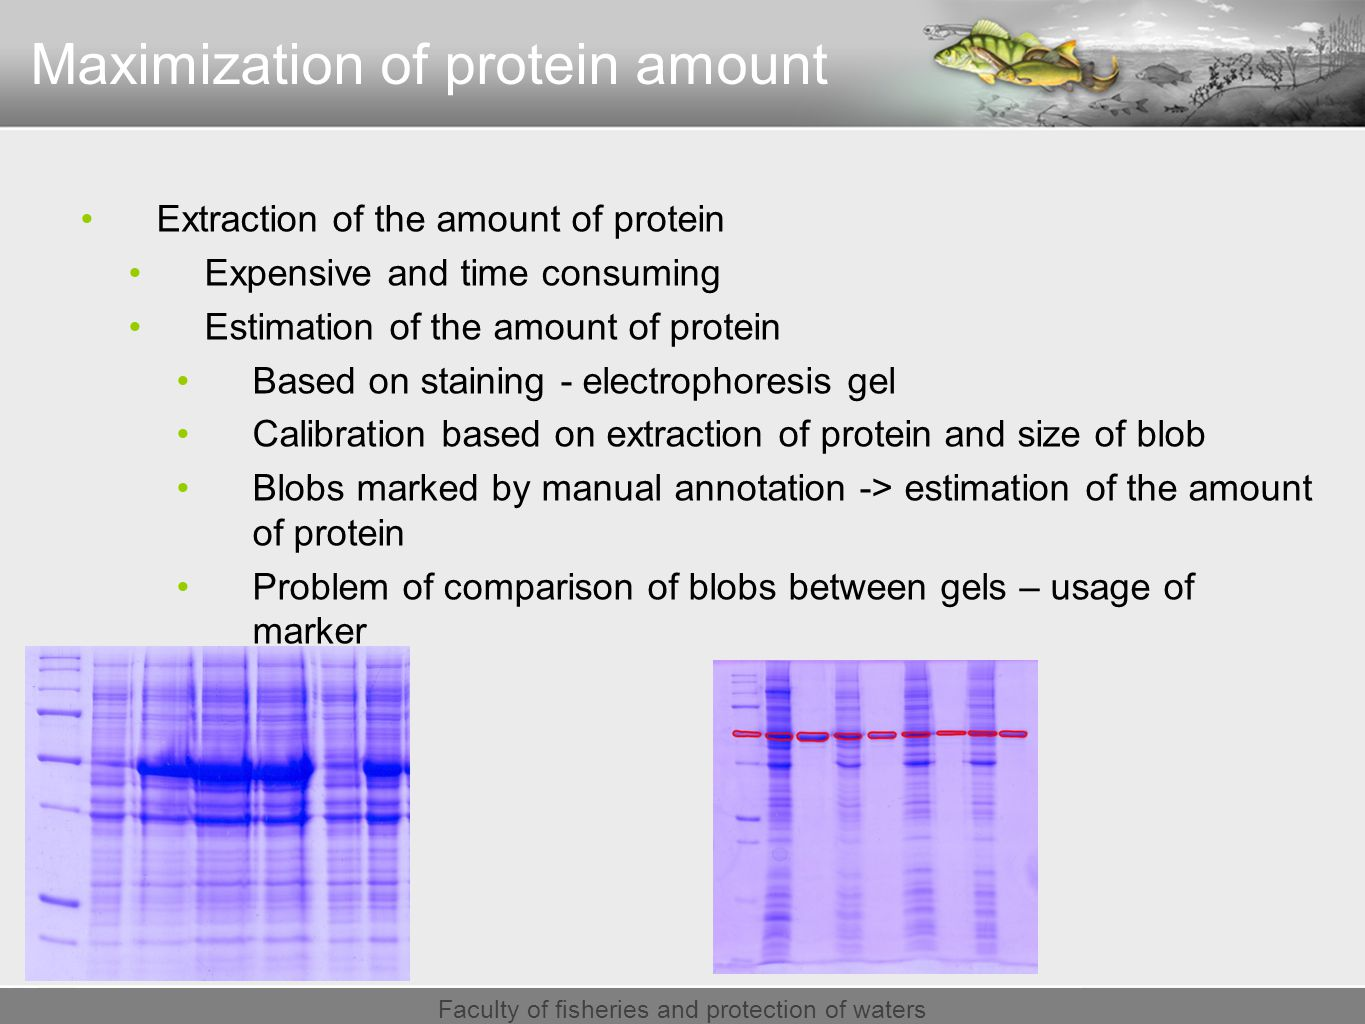 Faculty of fisheries and protection of waters Extraction of the amount of protein Expensive and time consuming Estimation of the amount of protein Based on staining - electrophoresis gel Calibration based on extraction of protein and size of blob Blobs marked by manual annotation -> estimation of the amount of protein Problem of comparison of blobs between gels – usage of marker Maximization of protein amount